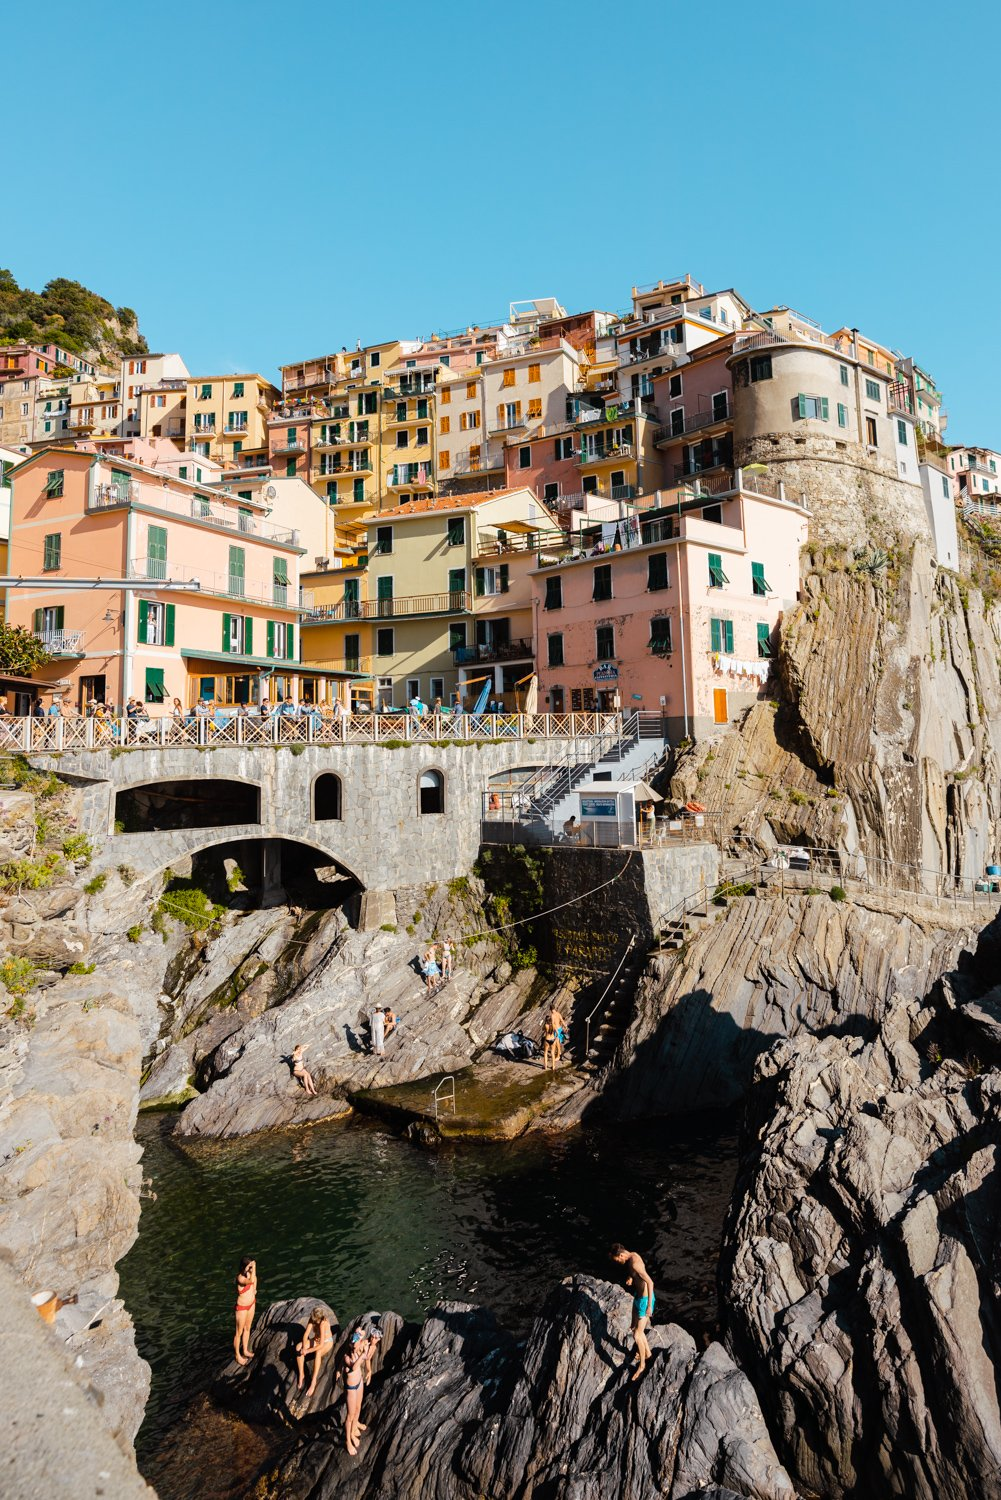 People swimming amongst bridge and colorful buildings of Manarola in Cinque Terre